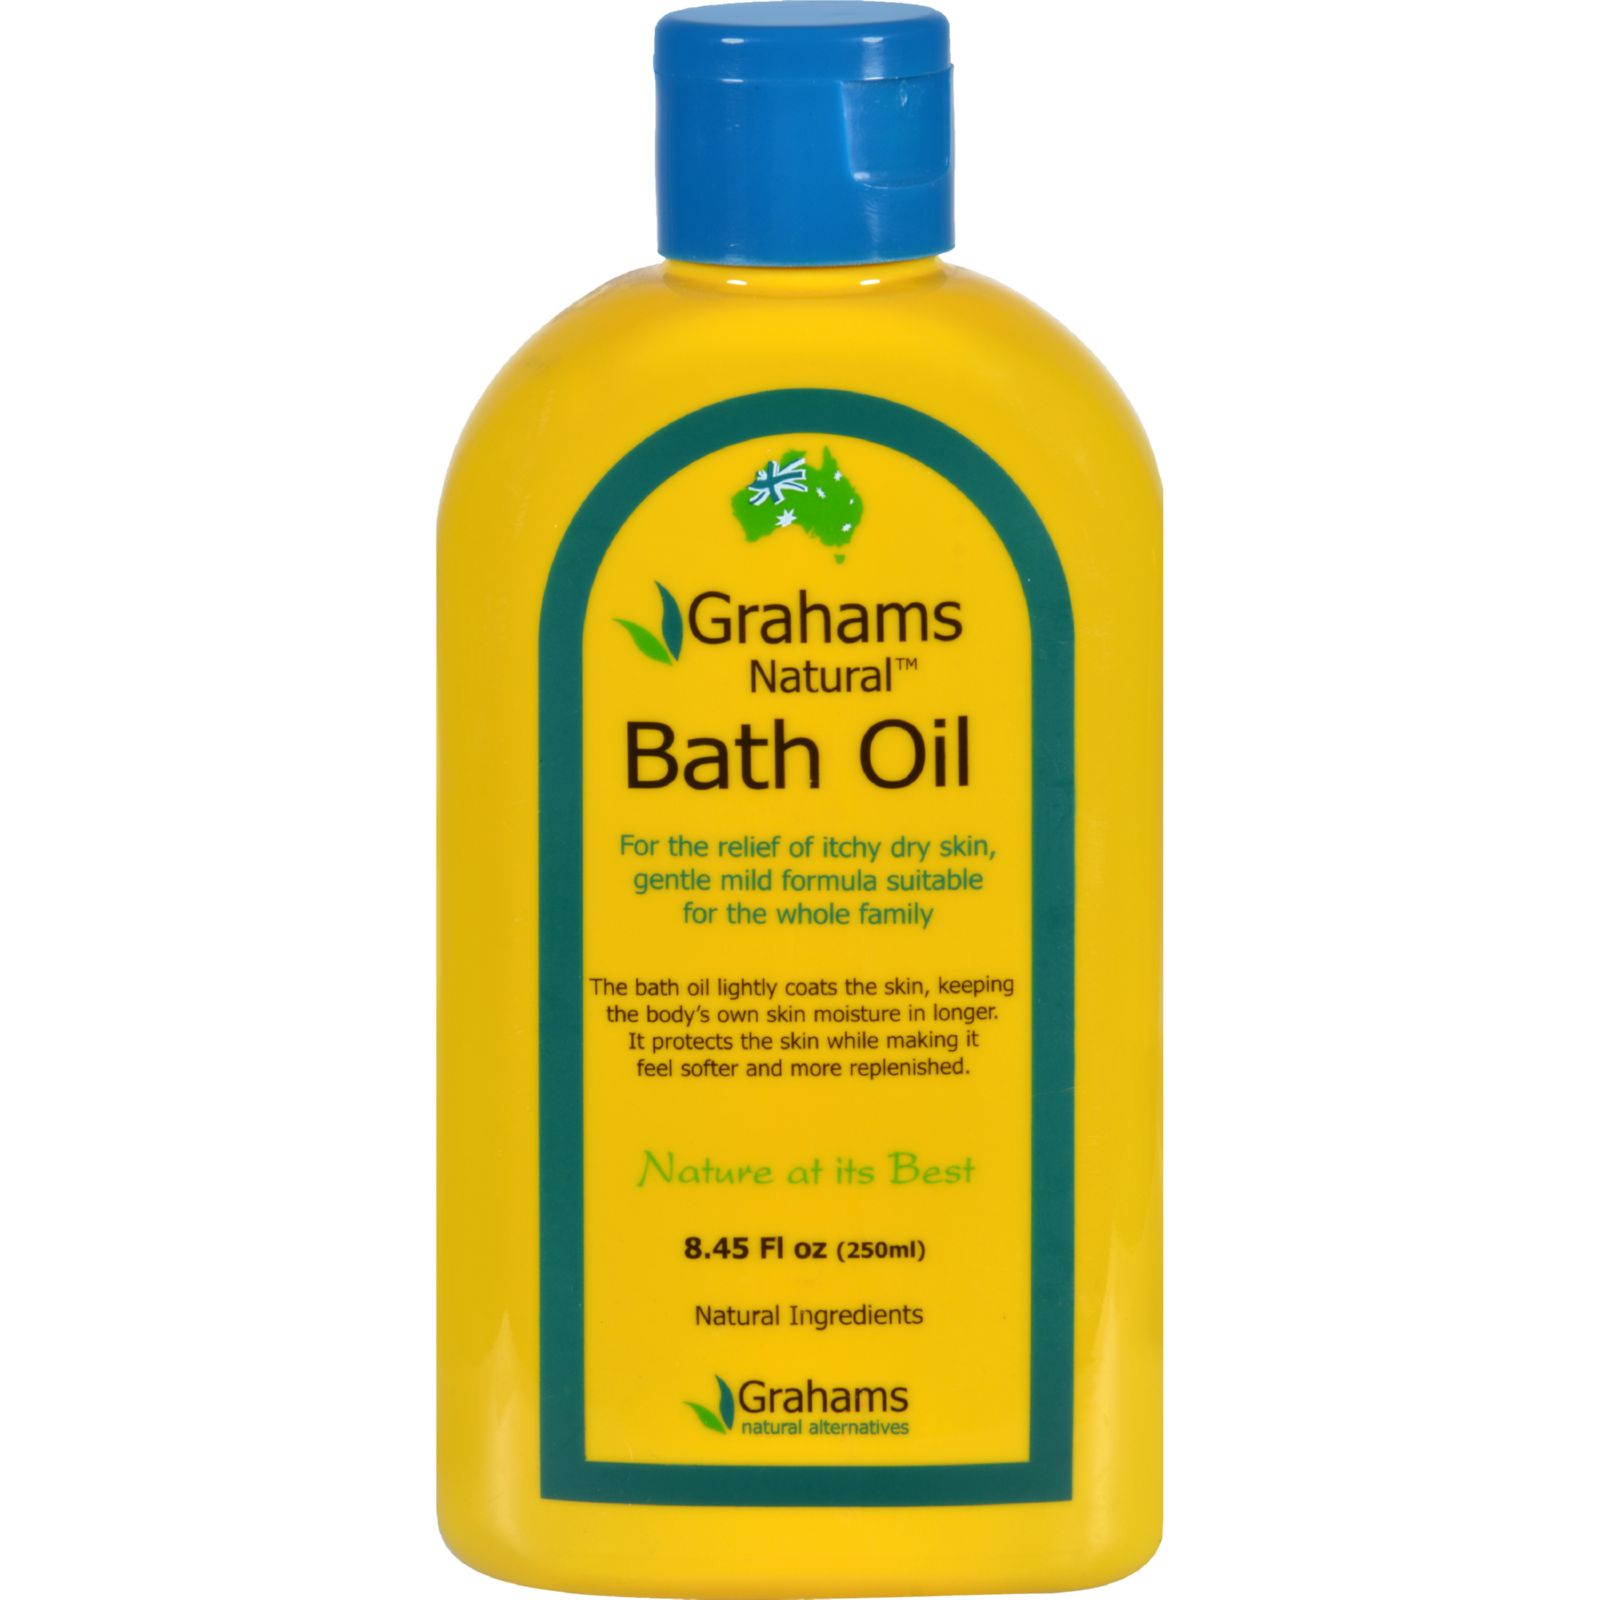 Grahams Natural Bath Oil - Dry Itchy Skin - 8.45 oz